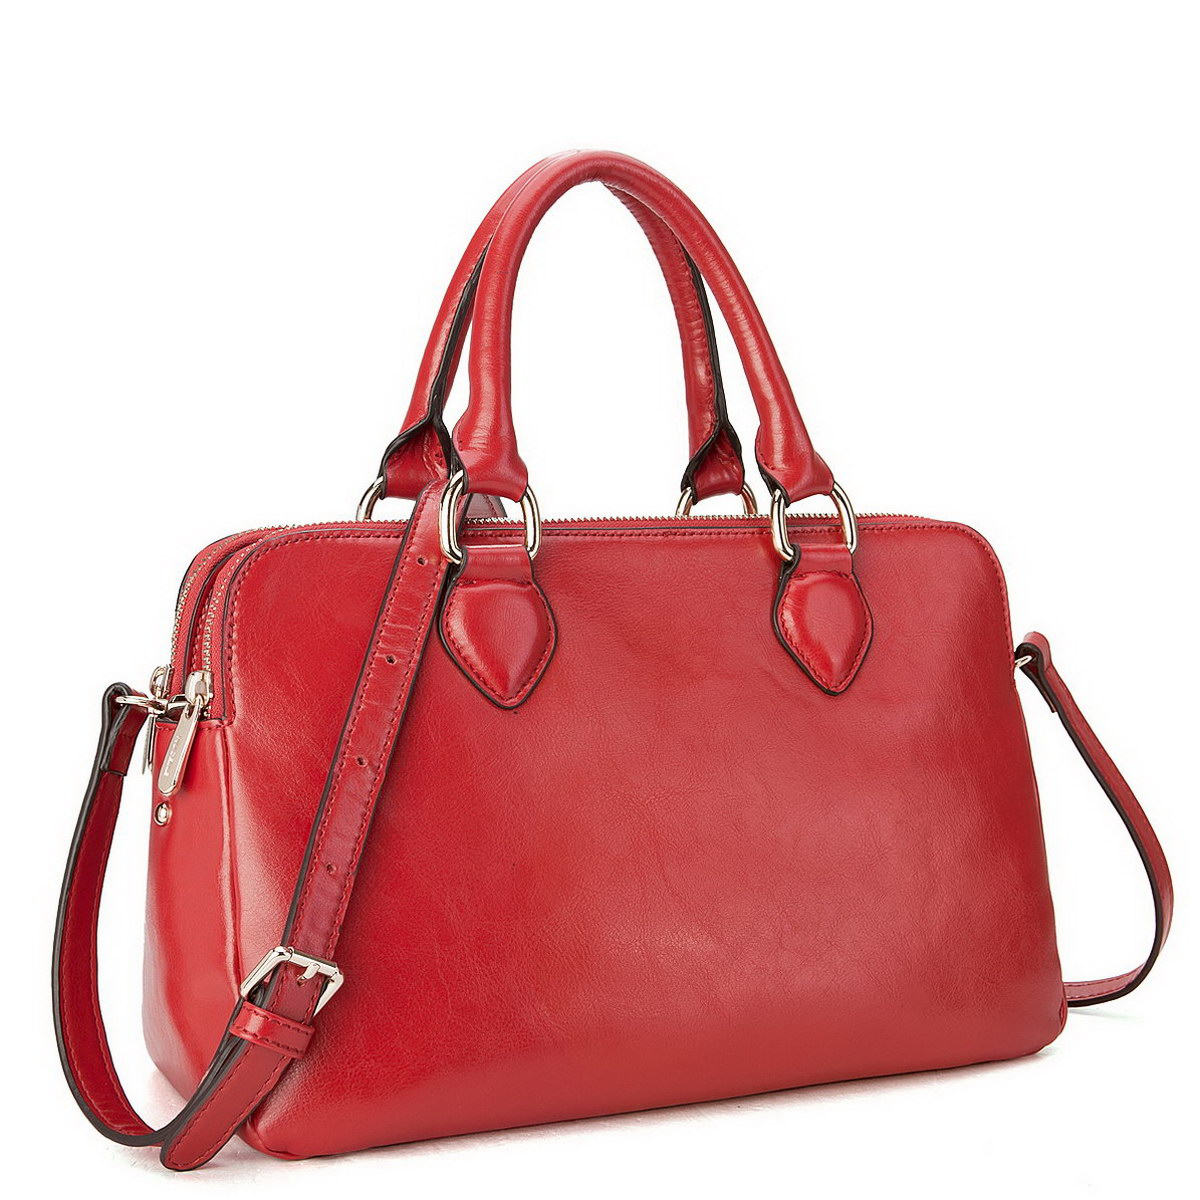 Brand leather handbags Red